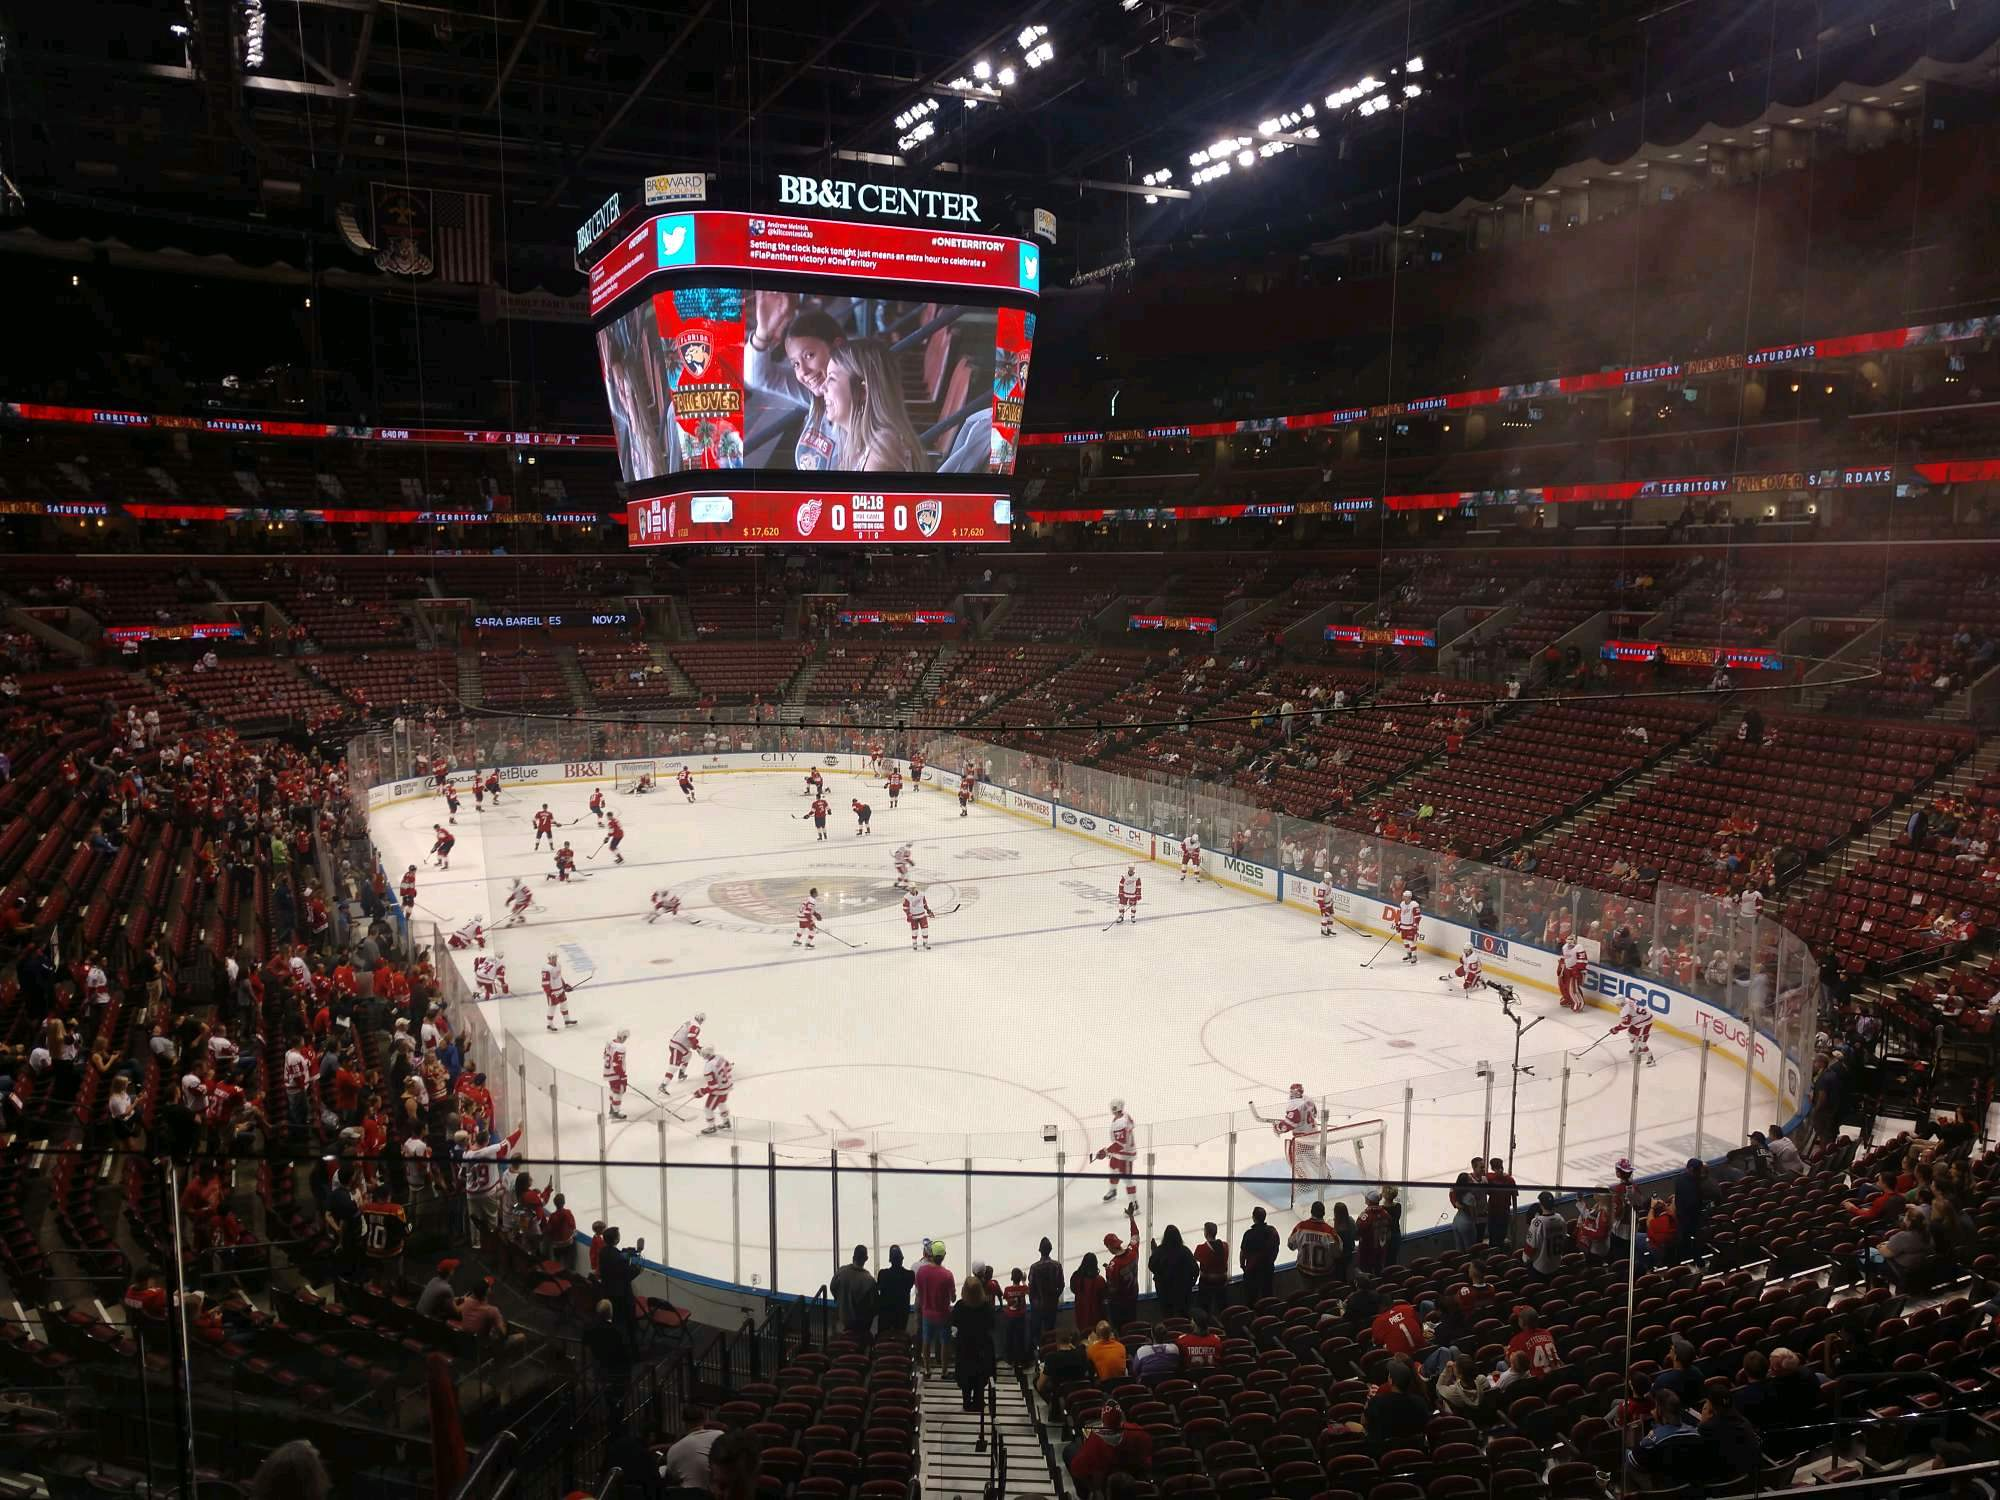 BB&T Center Section 128 Row 23 Seat 21